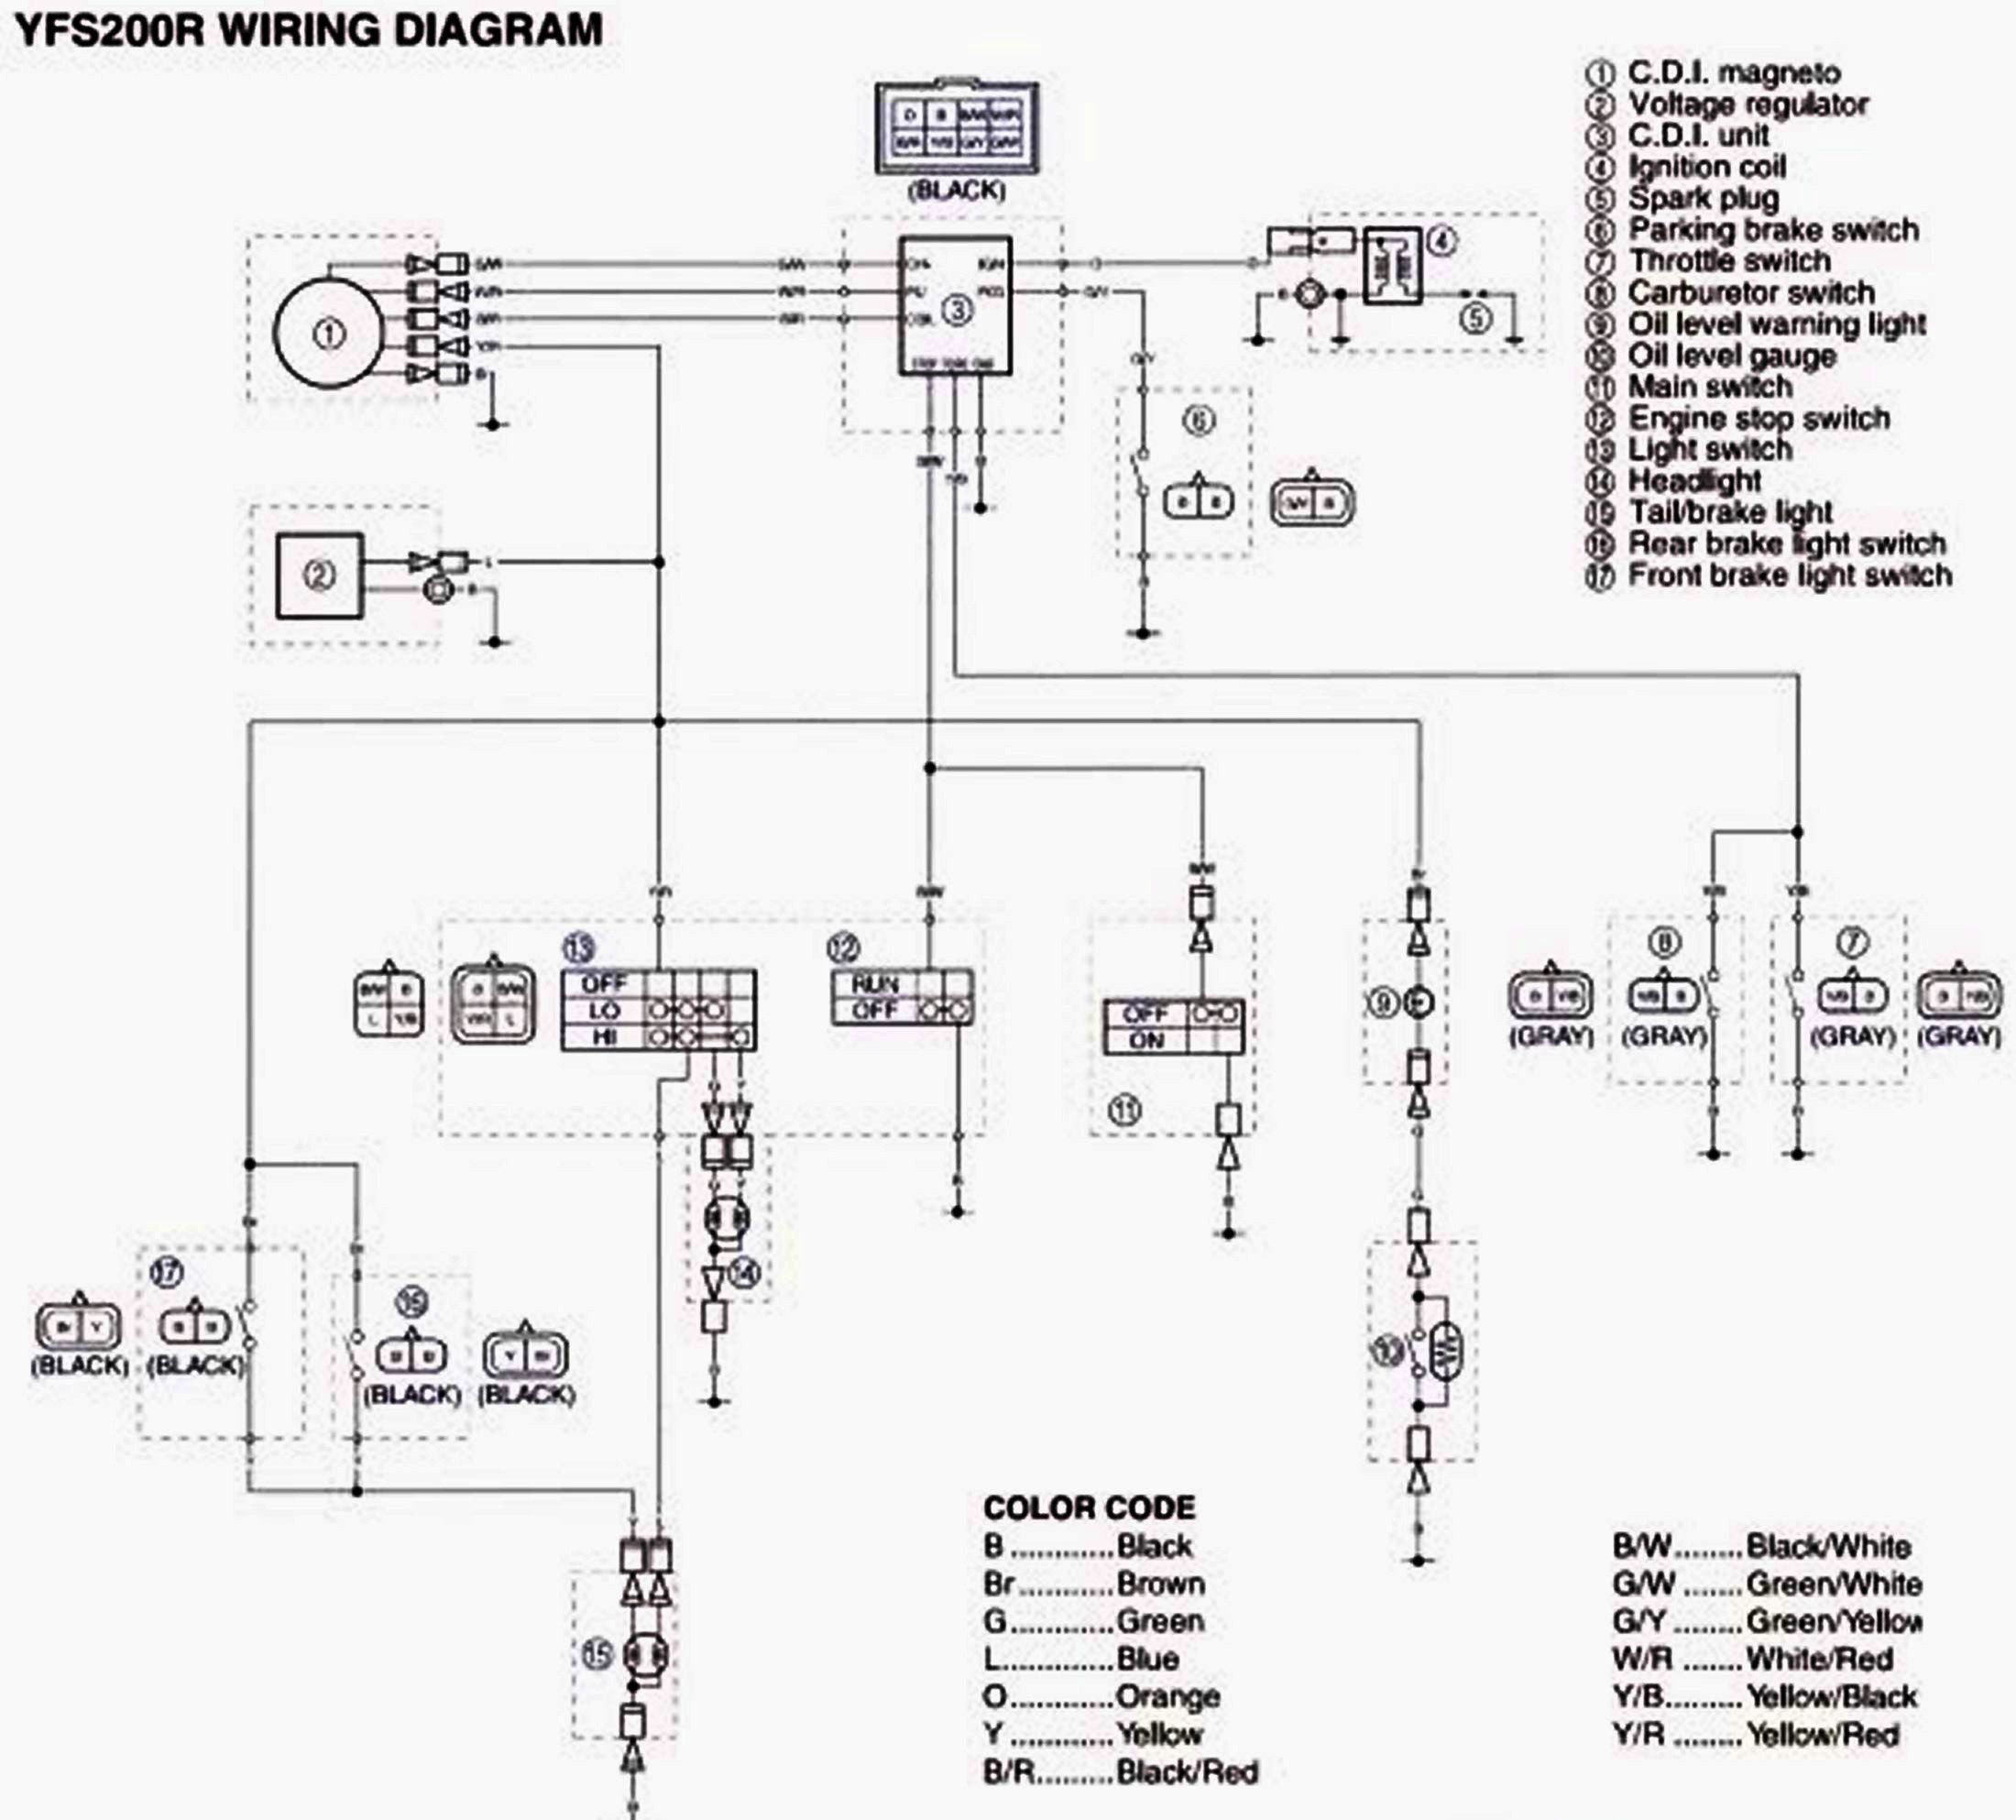 Motor Yamaha Warrior Wiring Diagram The Pleasing Kawasaki With together with John Deere G Ecu Wiring Diagram Color Code Chart likewise D Jbid St S Wiring Questions Main Harness as well Yamaha Road Star further Roadwing Shock Install Tykes Place Of Yamaha Road Star Wiring Diagram. on 2001 yamaha warrior wiring diagram